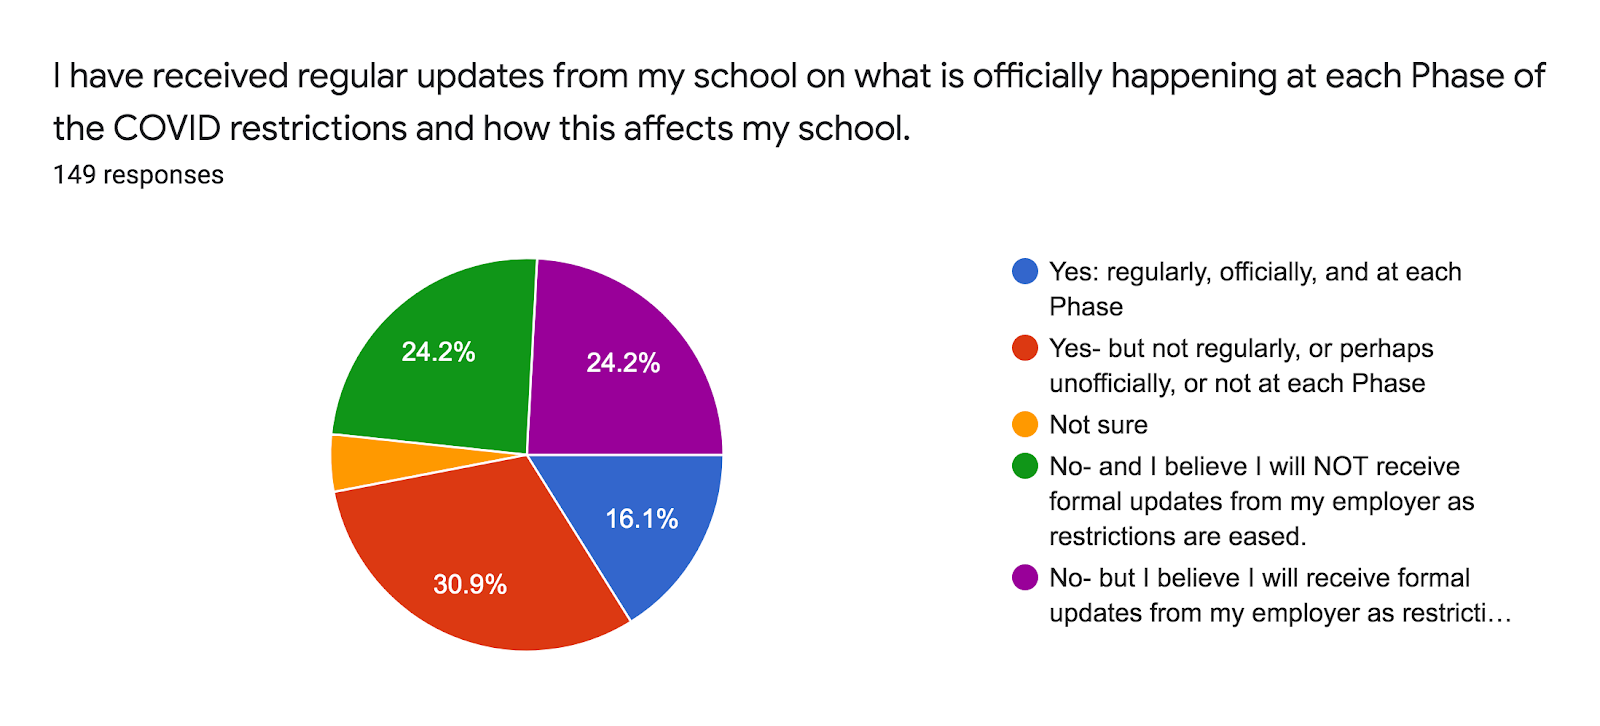 Forms response chart. Question title: I have received regular updates from my school on what is officially happening at each Phase of the COVID restrictions and how this affects my school.. Number of responses: 149 responses.